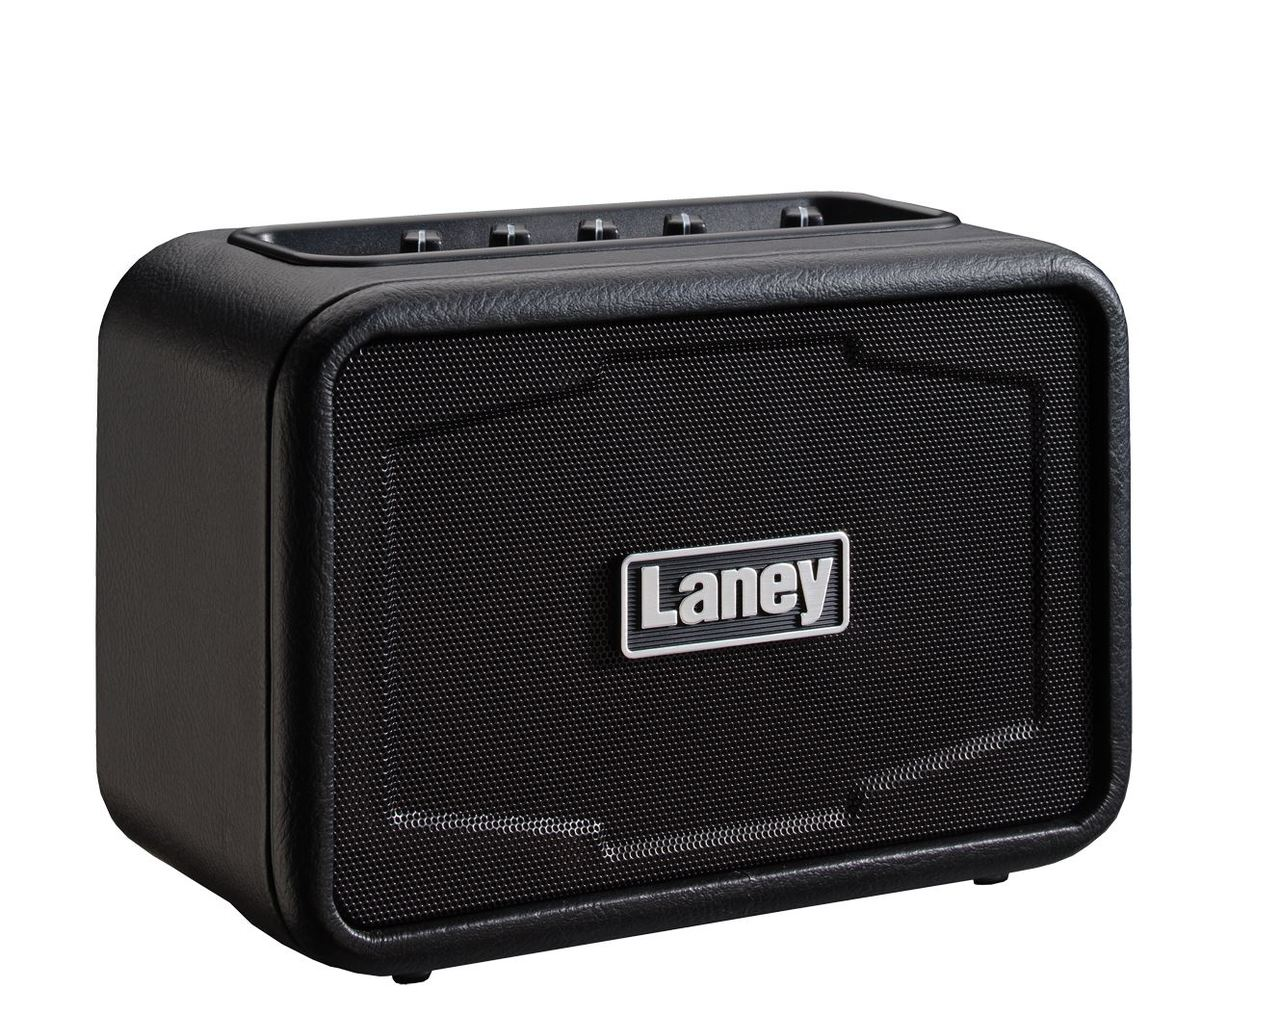 Laney Mini Iron 2 Channel Stereo Amp w/ Smartphone Insert Technology